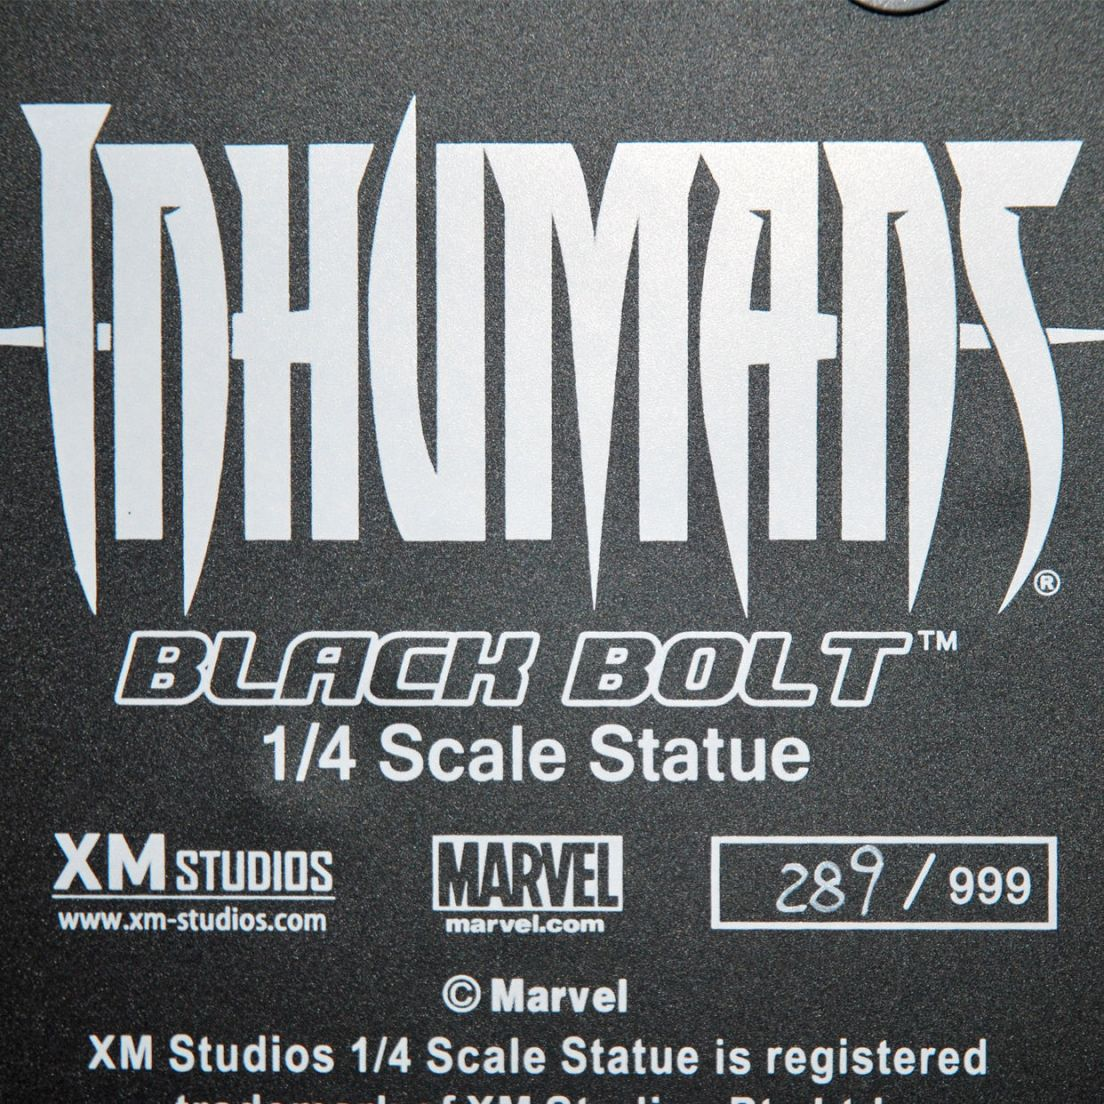 XM-Studios-BLACK-BOLT-1-4-Scale-Statue-289-999-_57 (5)